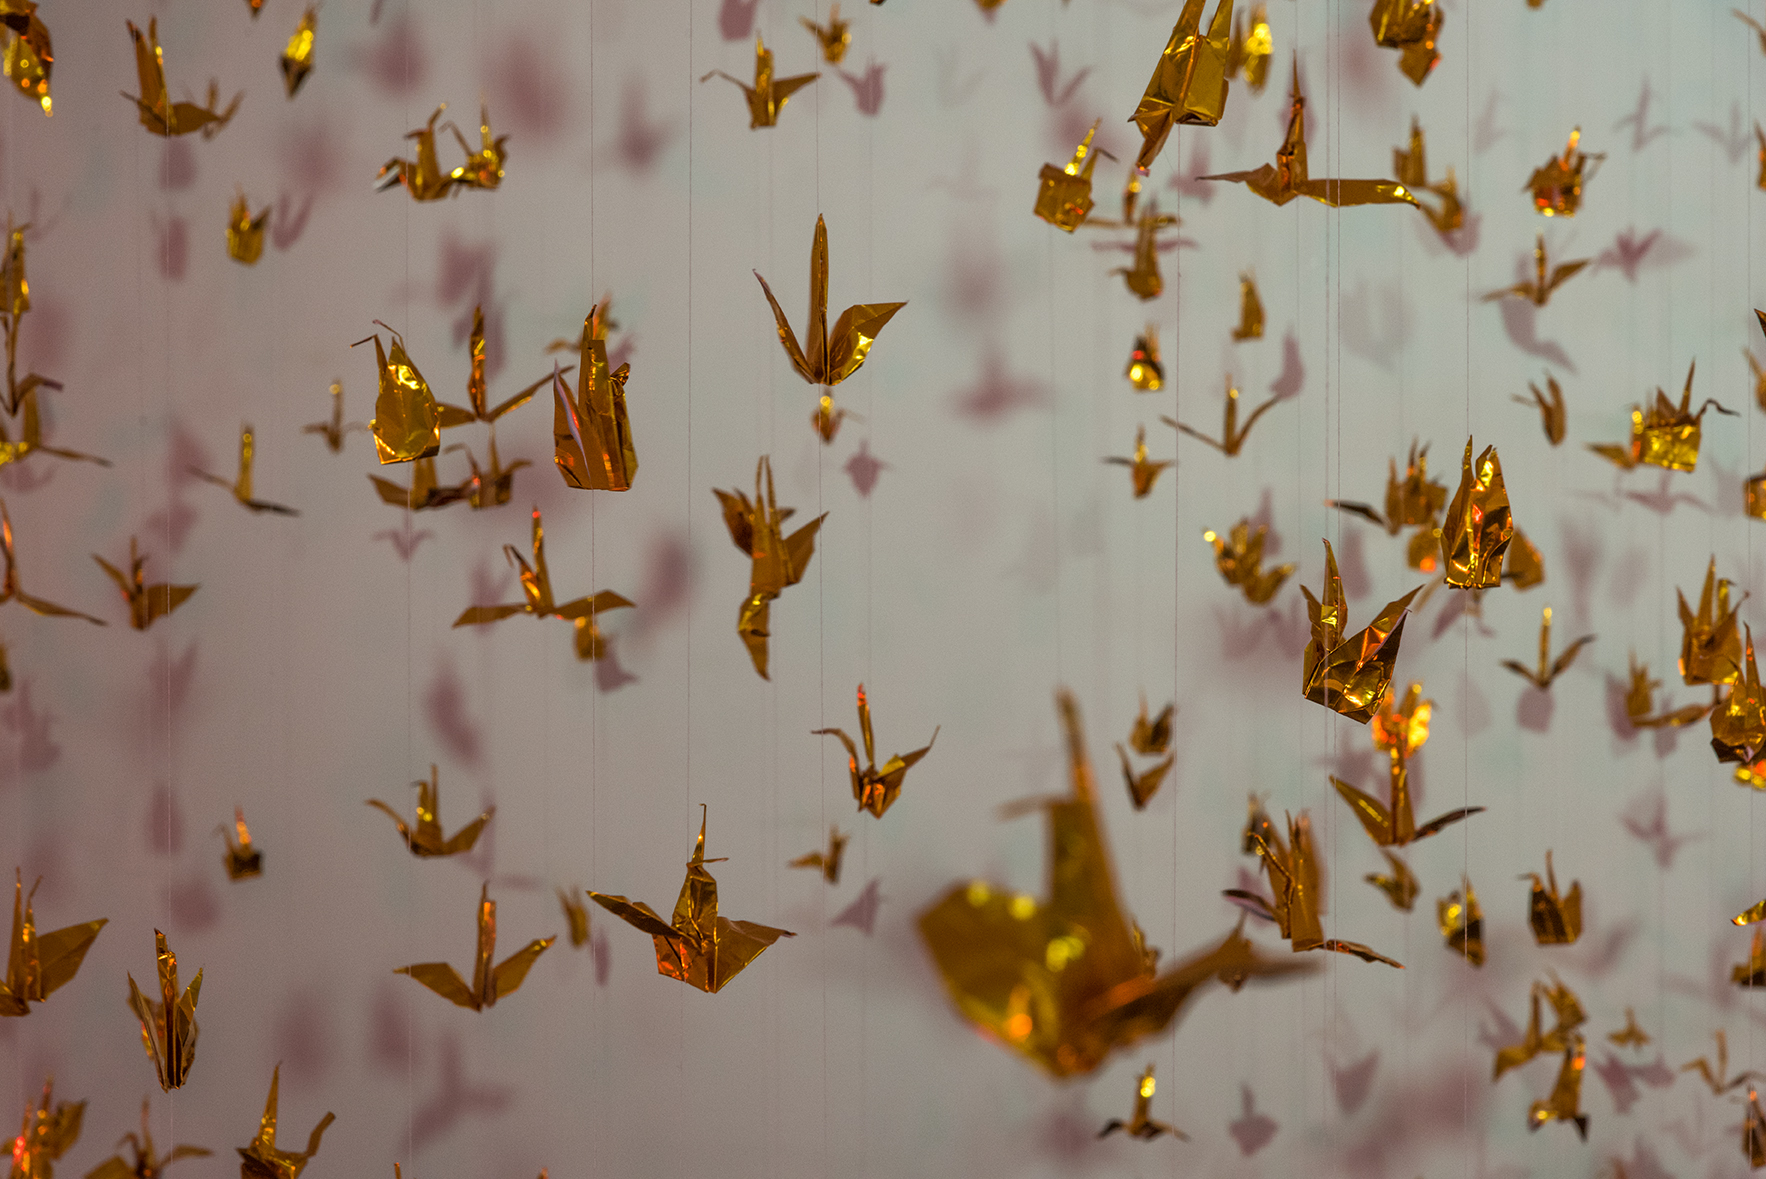 Isabelle Harada  W=Fd , 2016 Variable dimensions 999 foil origami cranes, thread, mylar gels